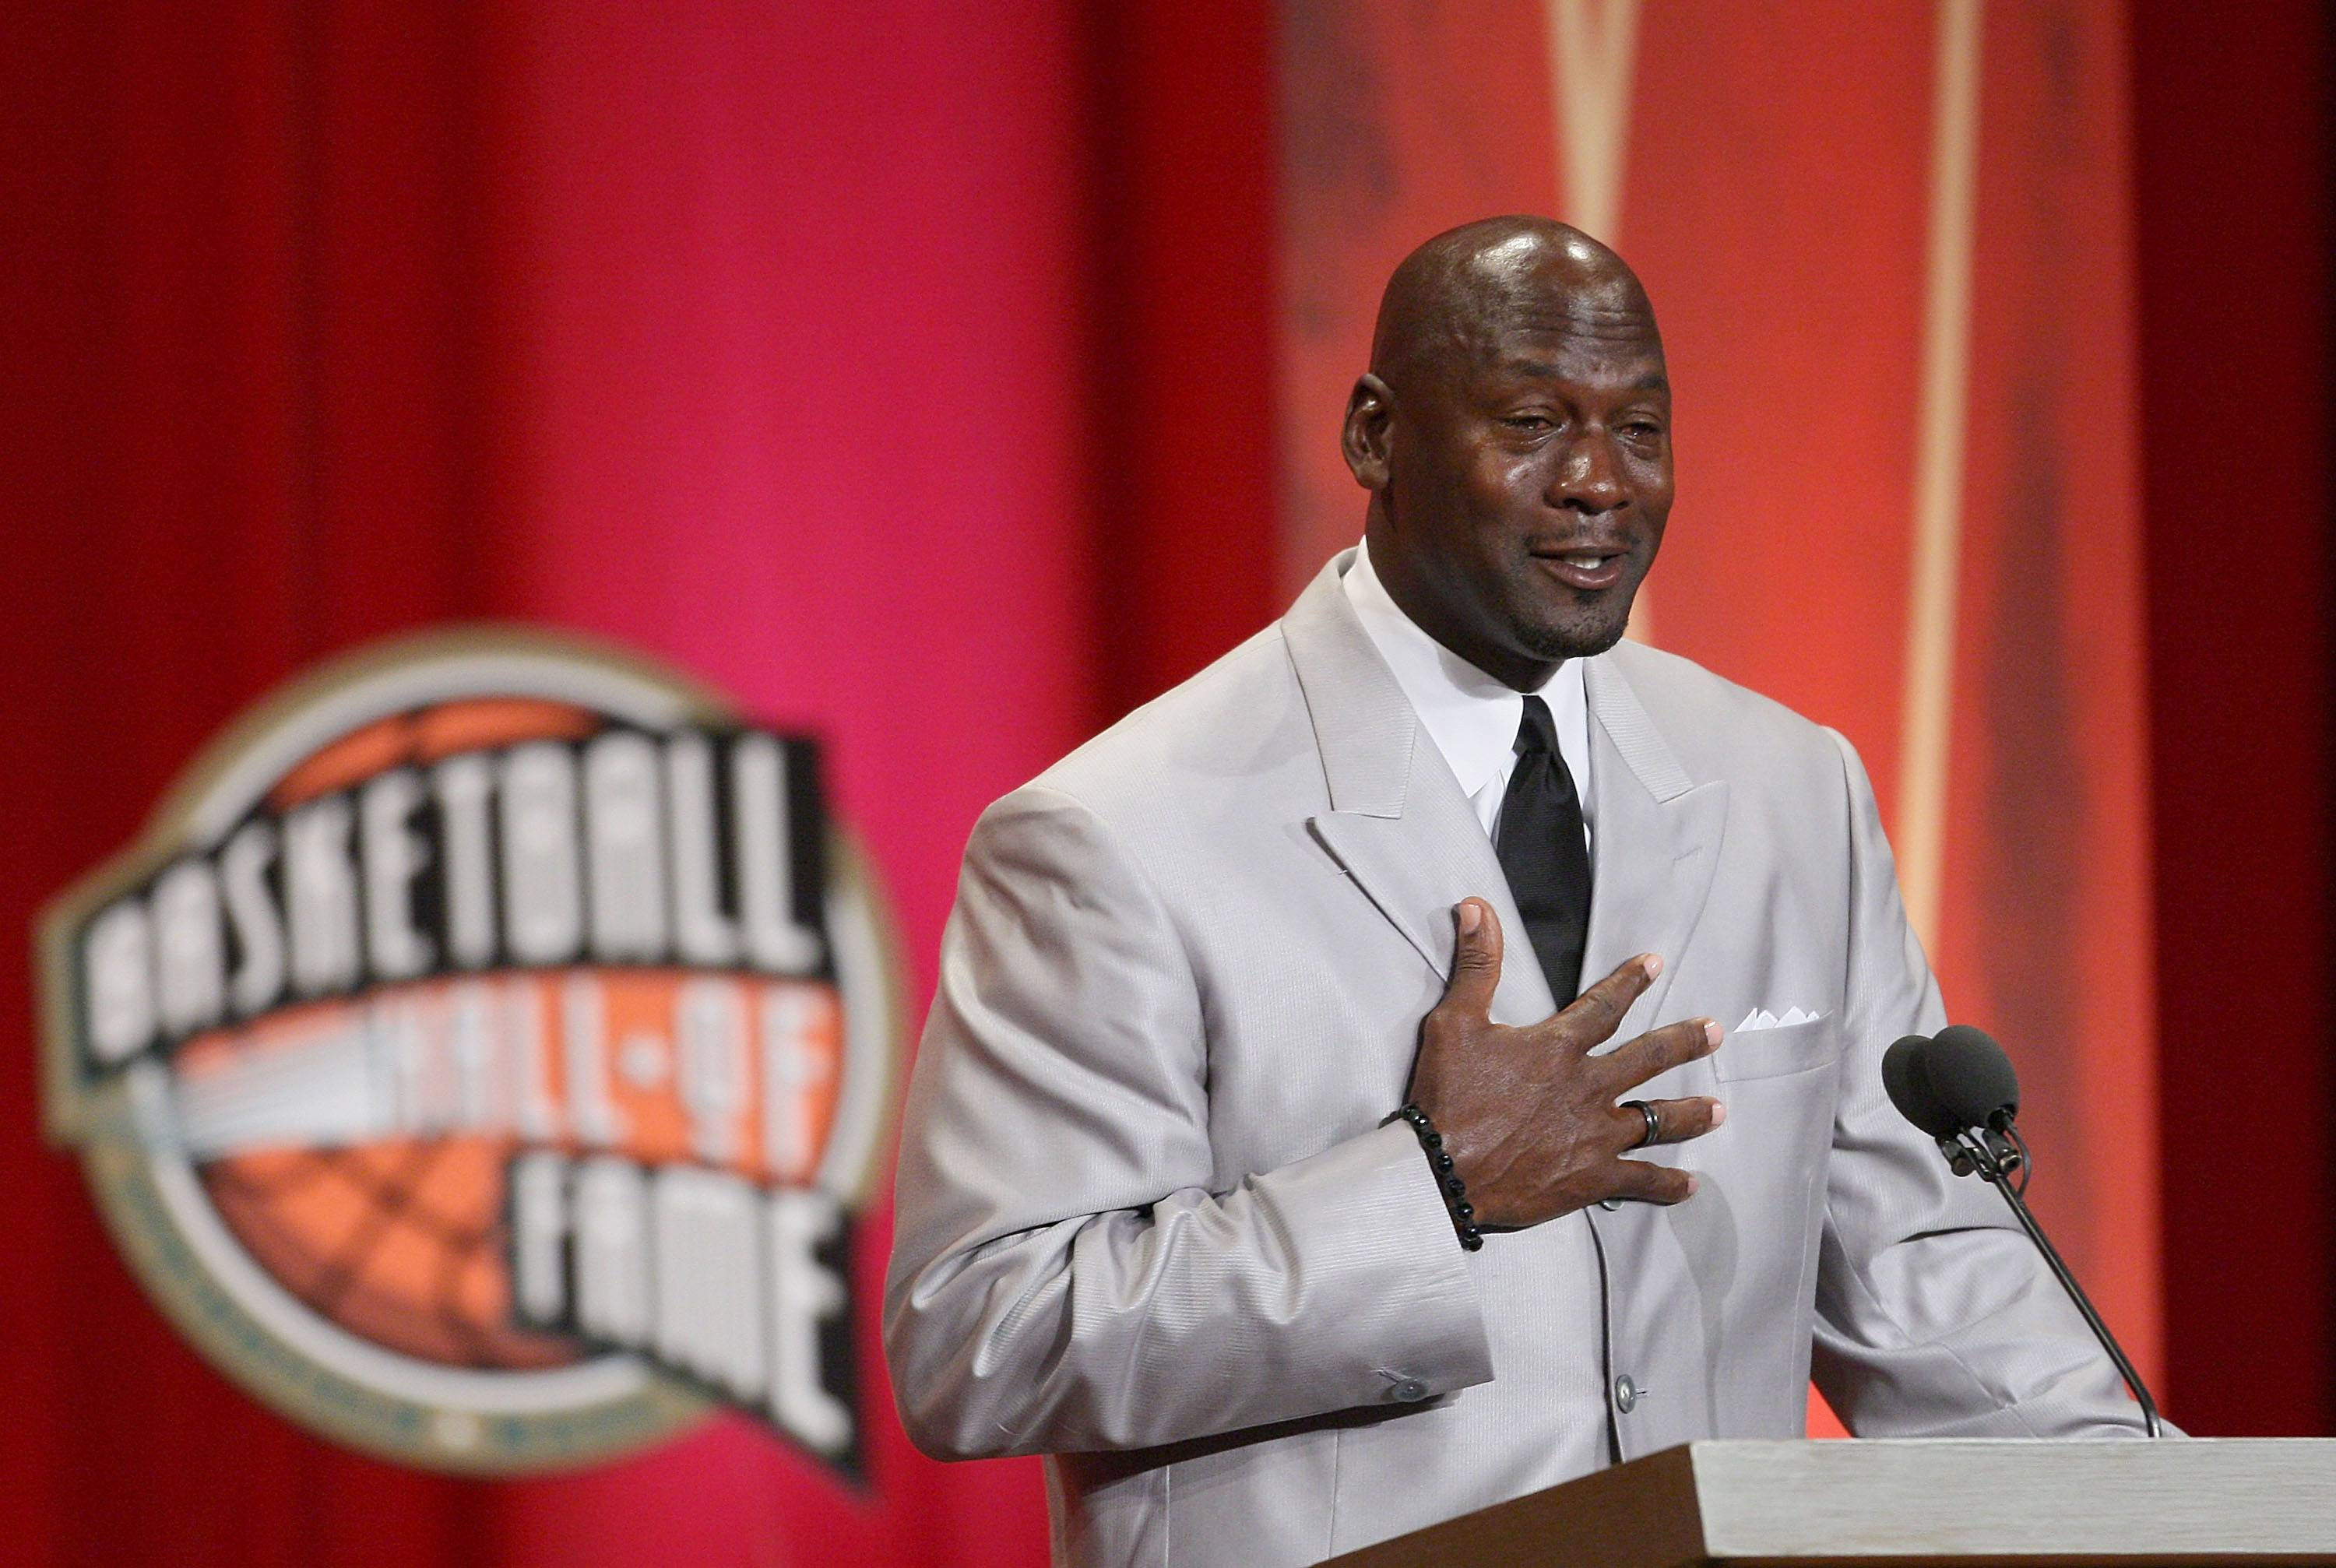 Crying Michael Jordan during Hall of Fame induction